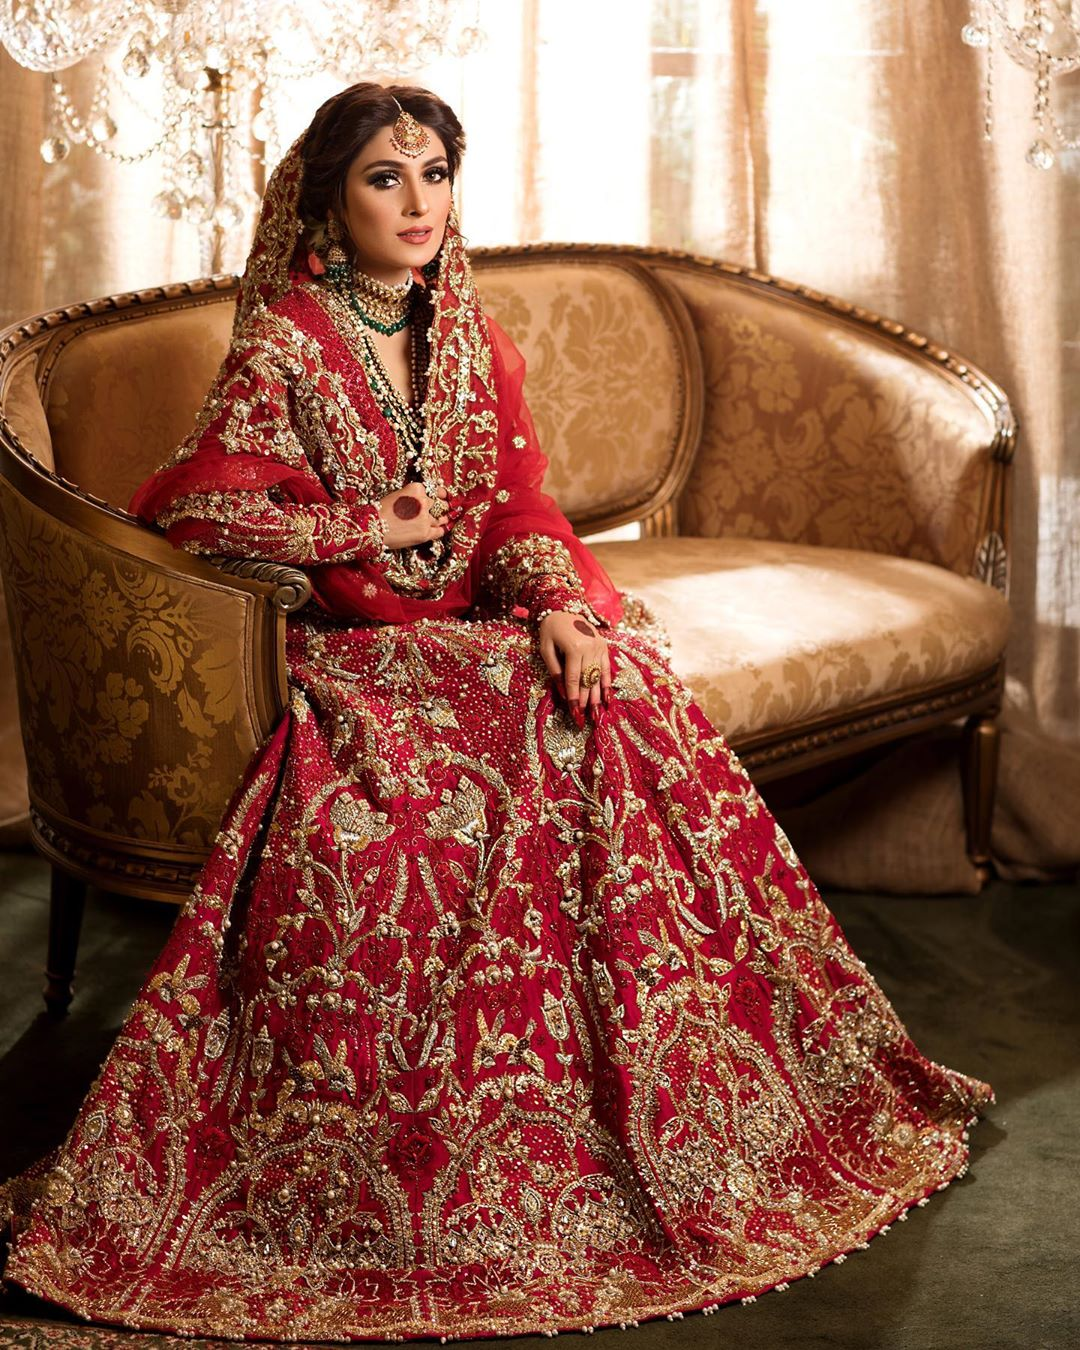 Ayeza Khan New Bride Shoot for Hifsa Salon